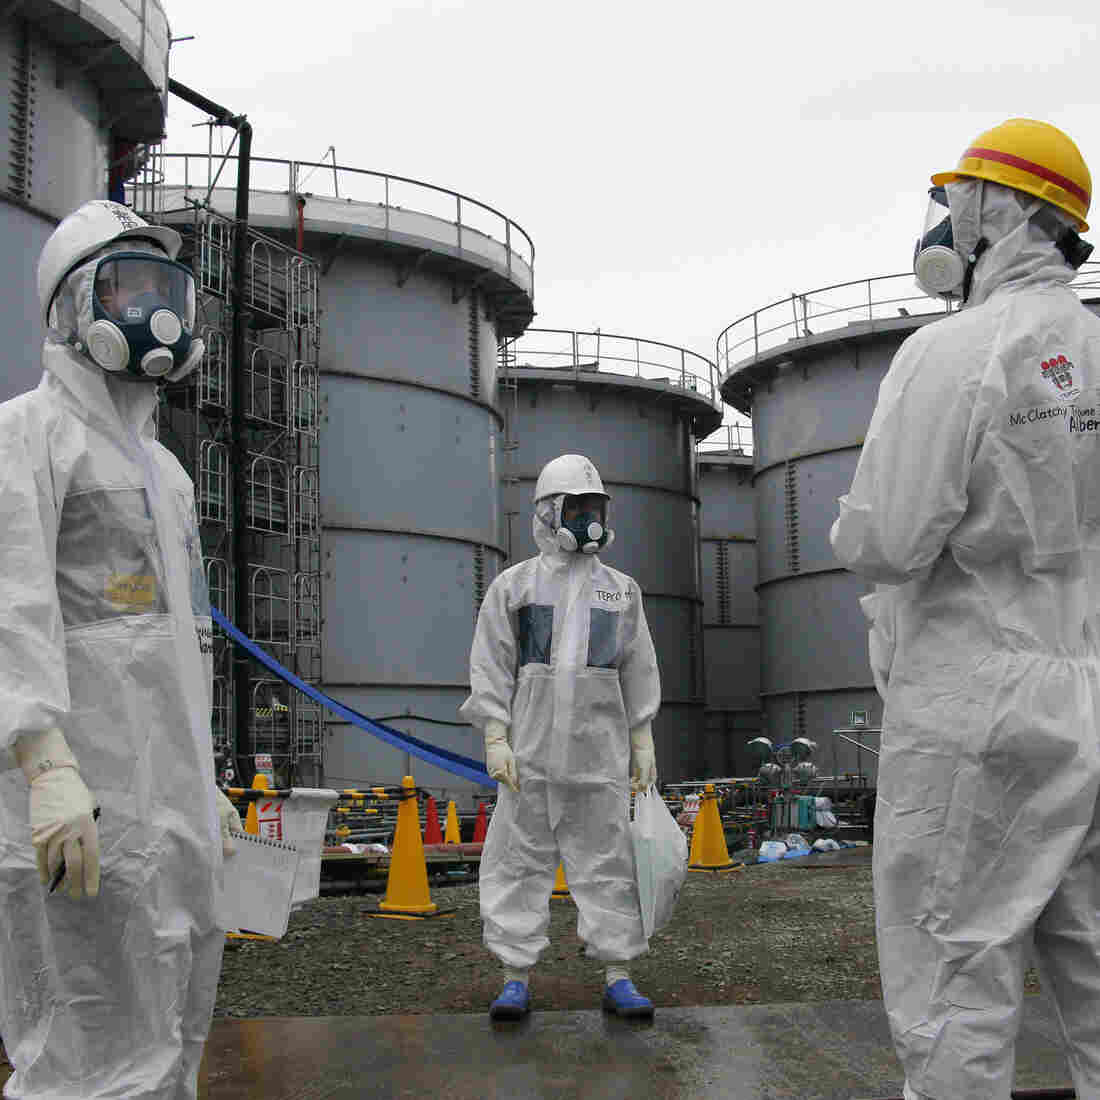 Three Years Later, A Harrowing Visit To Fukushima